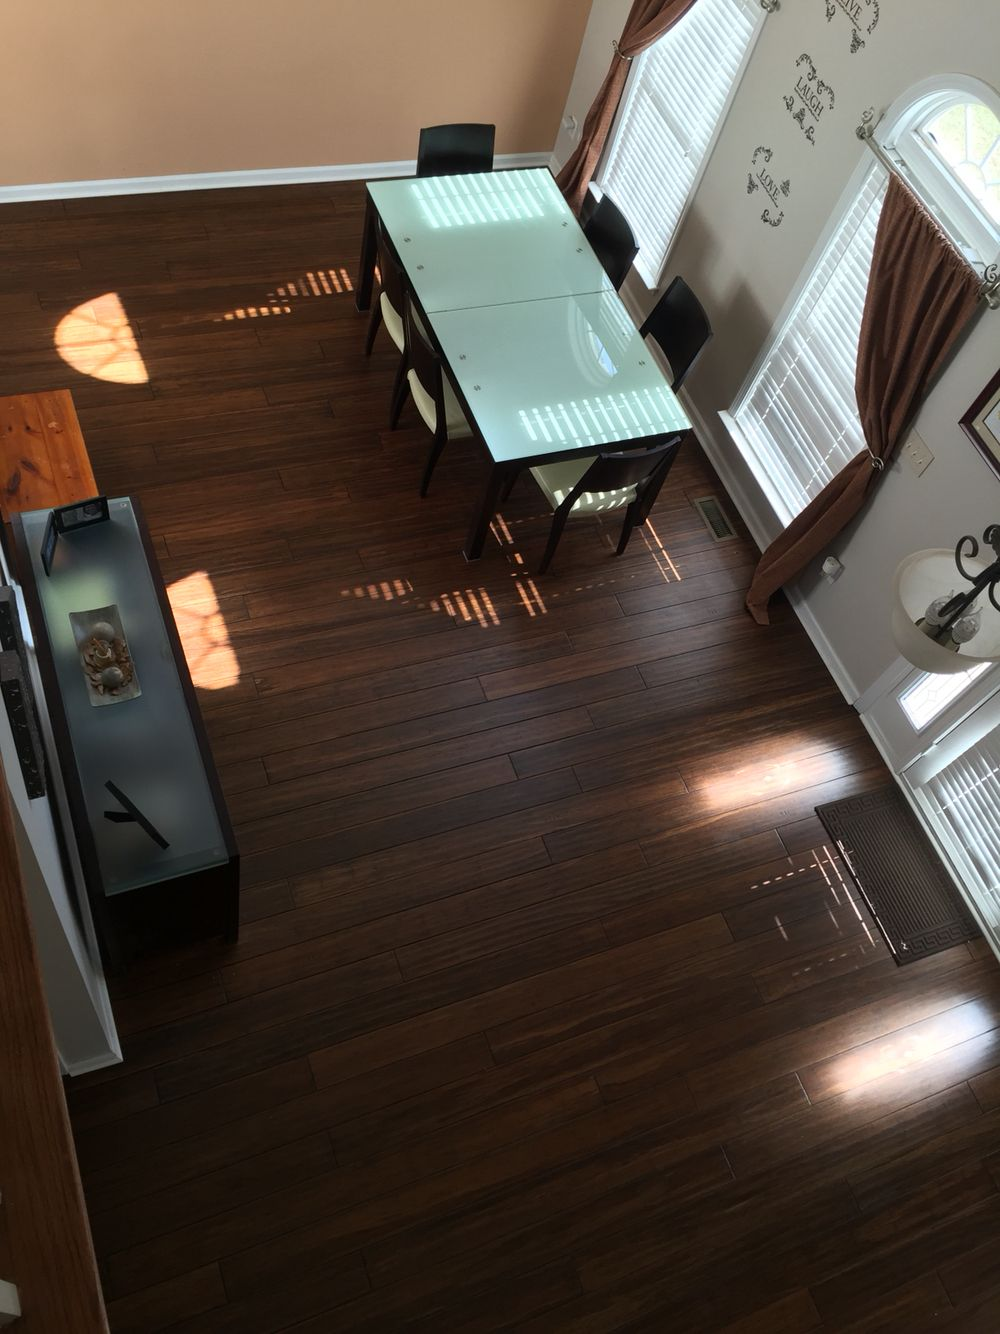 Bamboo Laminate Flooring Ideas Love my Antique Java Cali Bamboo floors! #flooringidea #bamboo